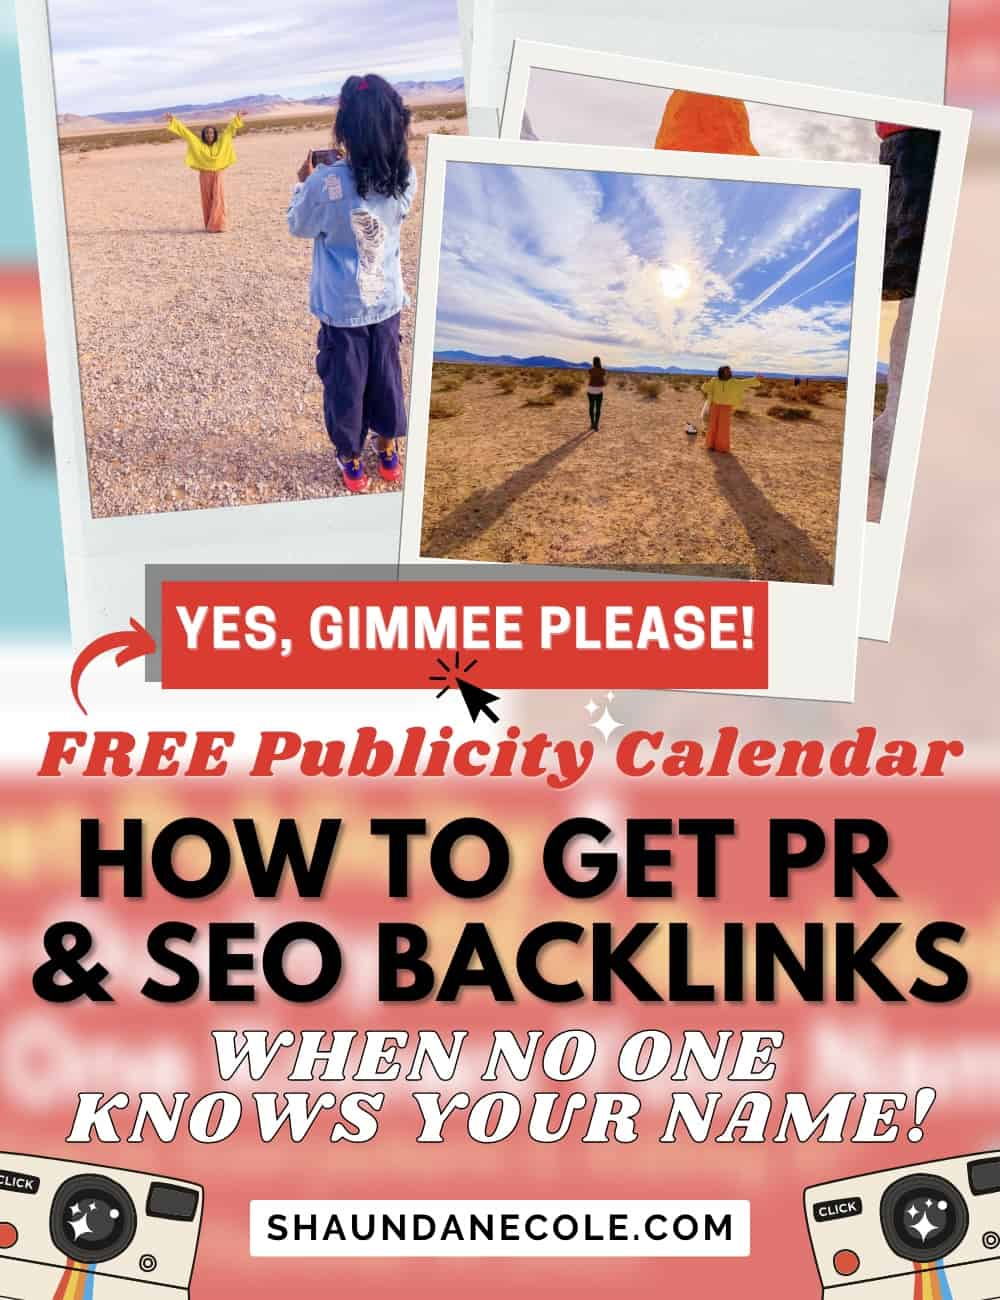 Free Publicity Calendar- How To Get PR & High Quality Backlinks When No One Knows Your Name